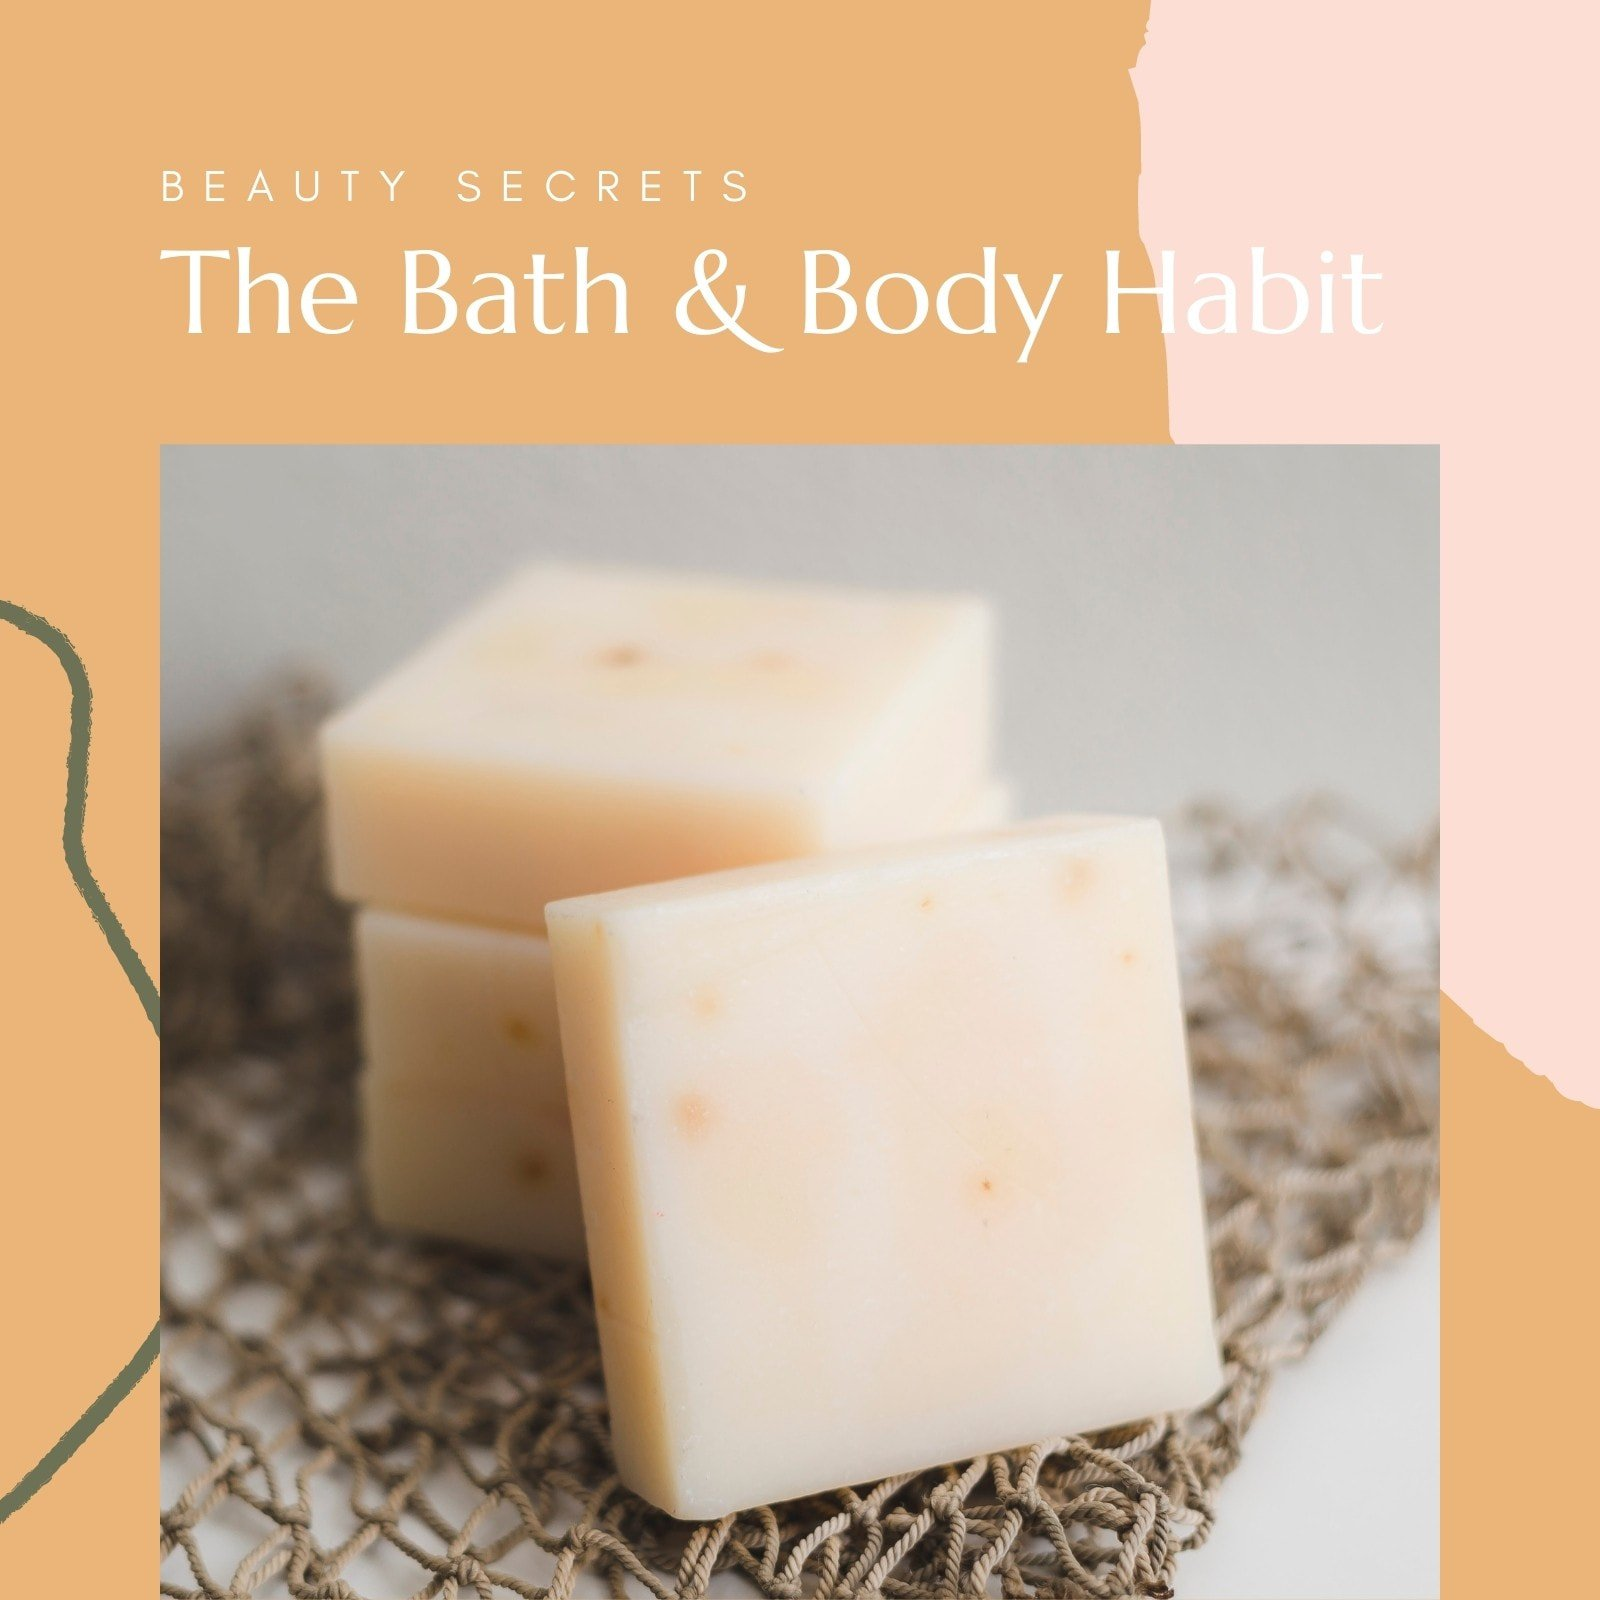 Yellow and Pink Bath & Body Habit Beauty Video Collage